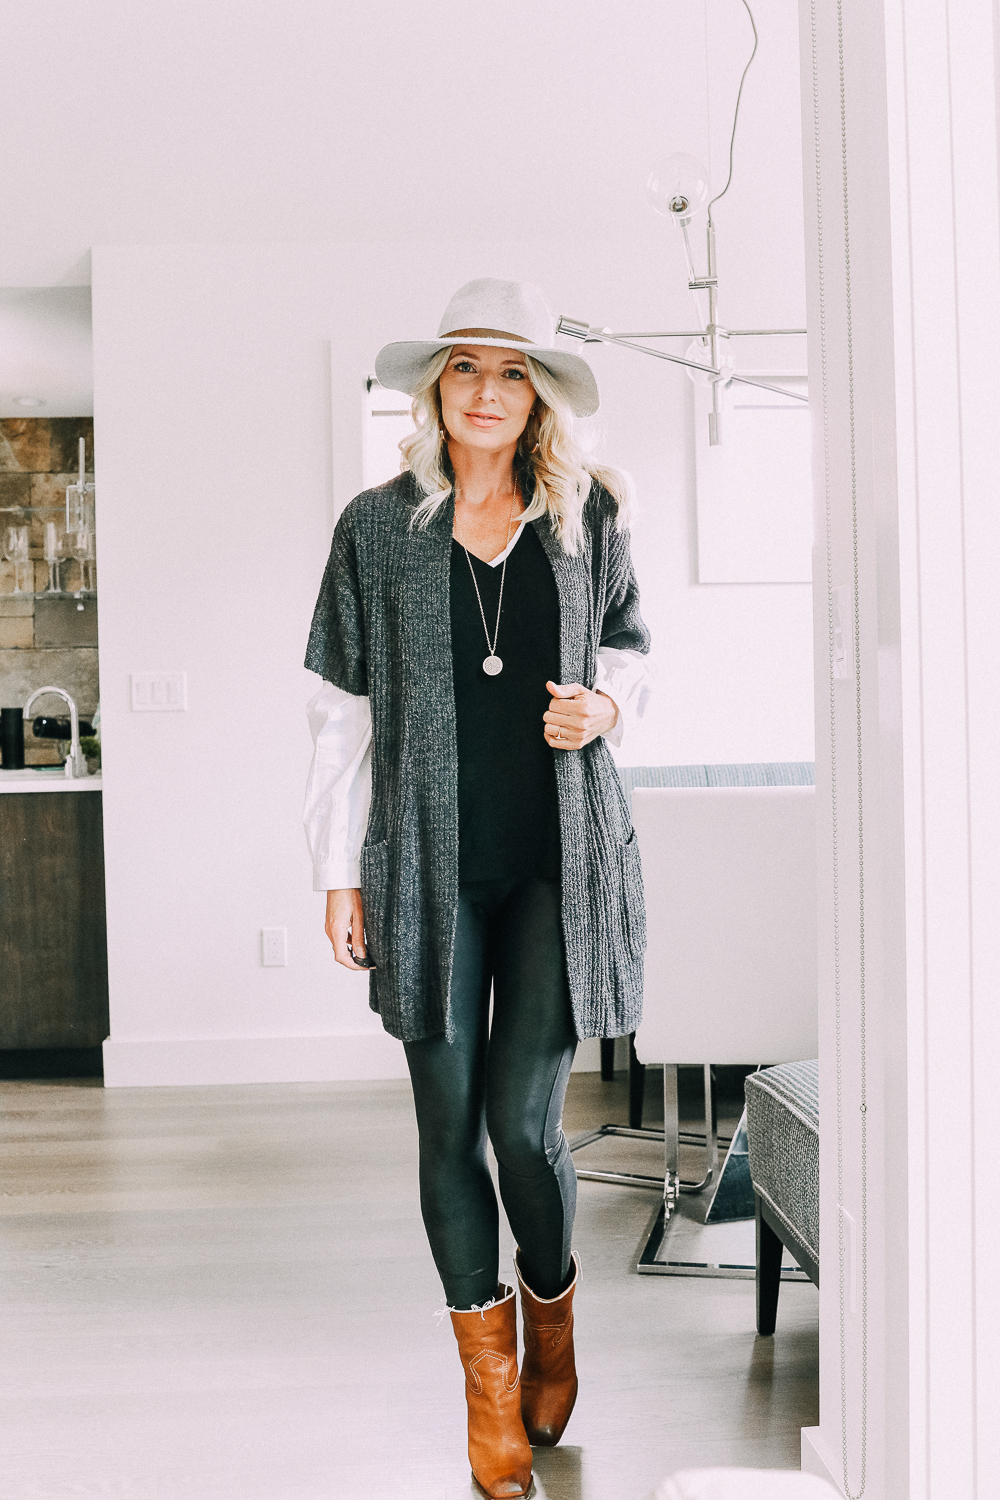 How to wear leggings over 40, faux leather leggings by Spanx with a two-in-one sweater, Saint Laurent boots, and rag & bone hat worn by Erin Busbee of busbeestyle.com in Telluride, CO, Barefoot Dreams giveaway